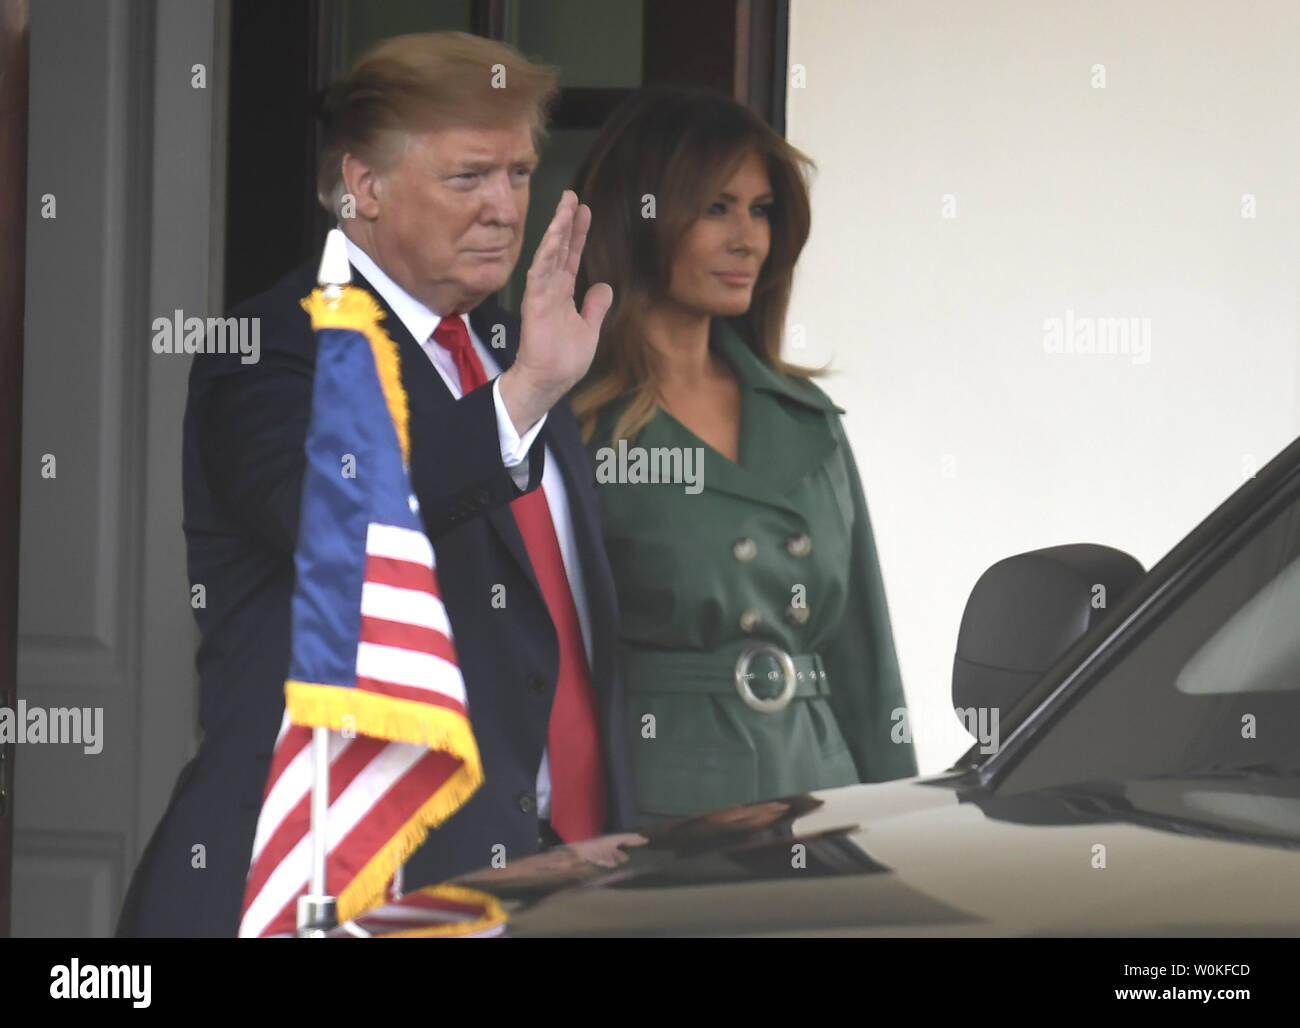 President Donald Trump and First Lady Melania Trump wave goodbye to Czech Prime Minister Andrej Babis as he departs the White House, March 7, 2019, in Washington, DC. The Czech Republic is a member of NATO, and talks were expected to include the conflict in Syria.      Photo by Mike Theiler/UPI - Stock Image